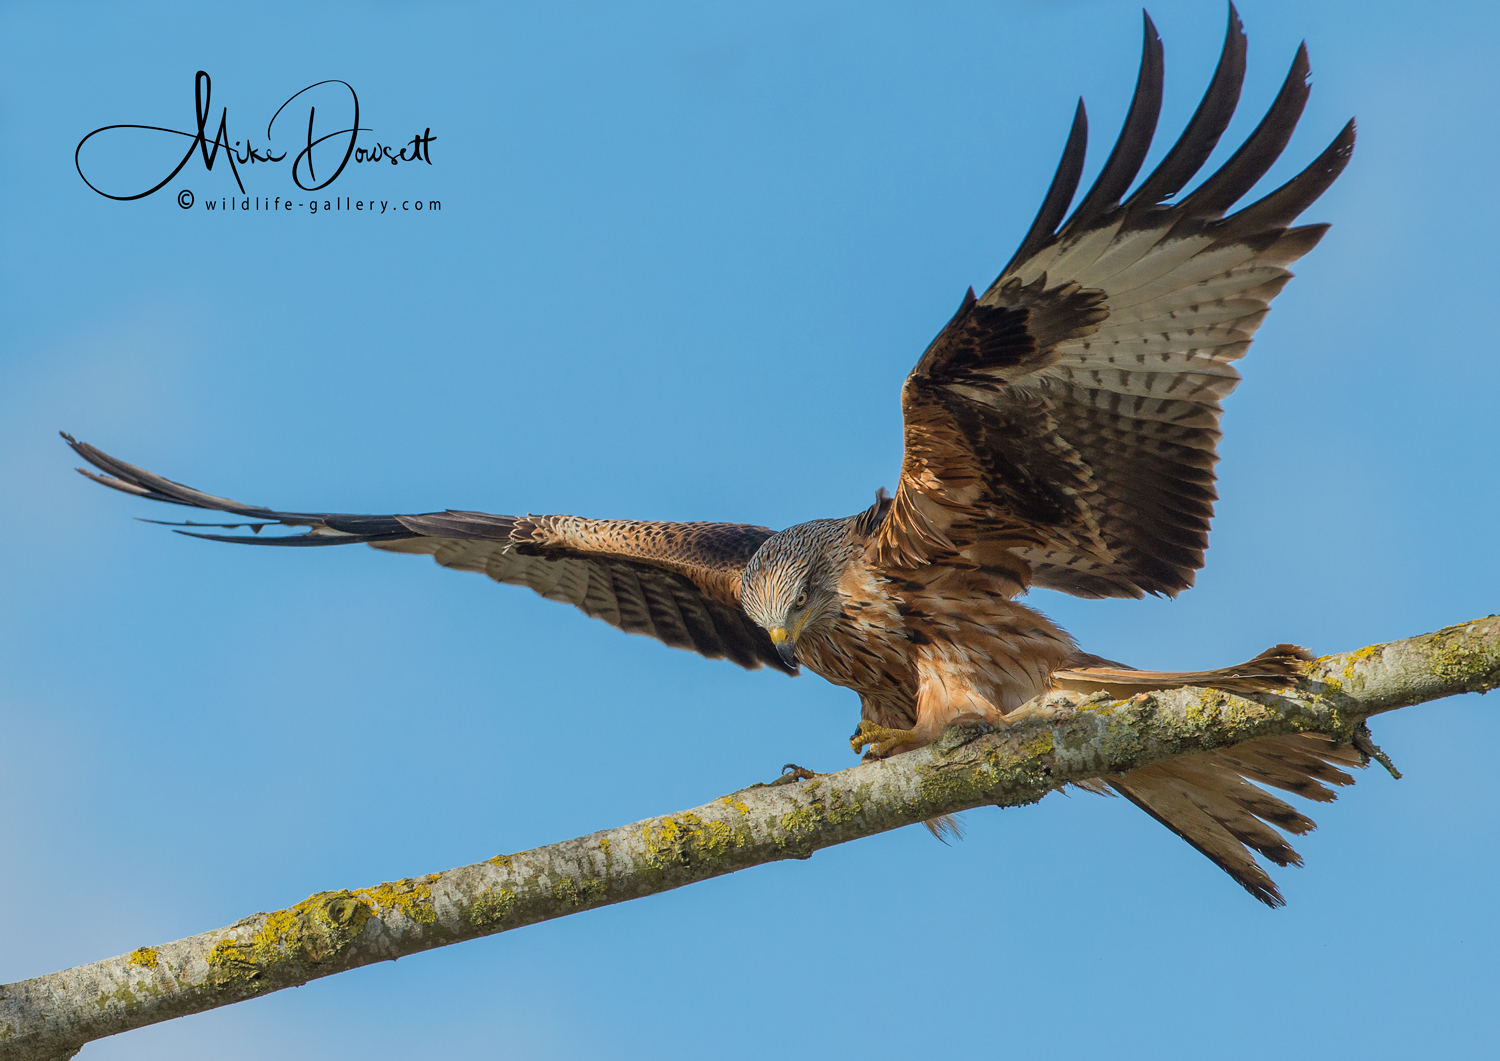 Red Kite landing on perch